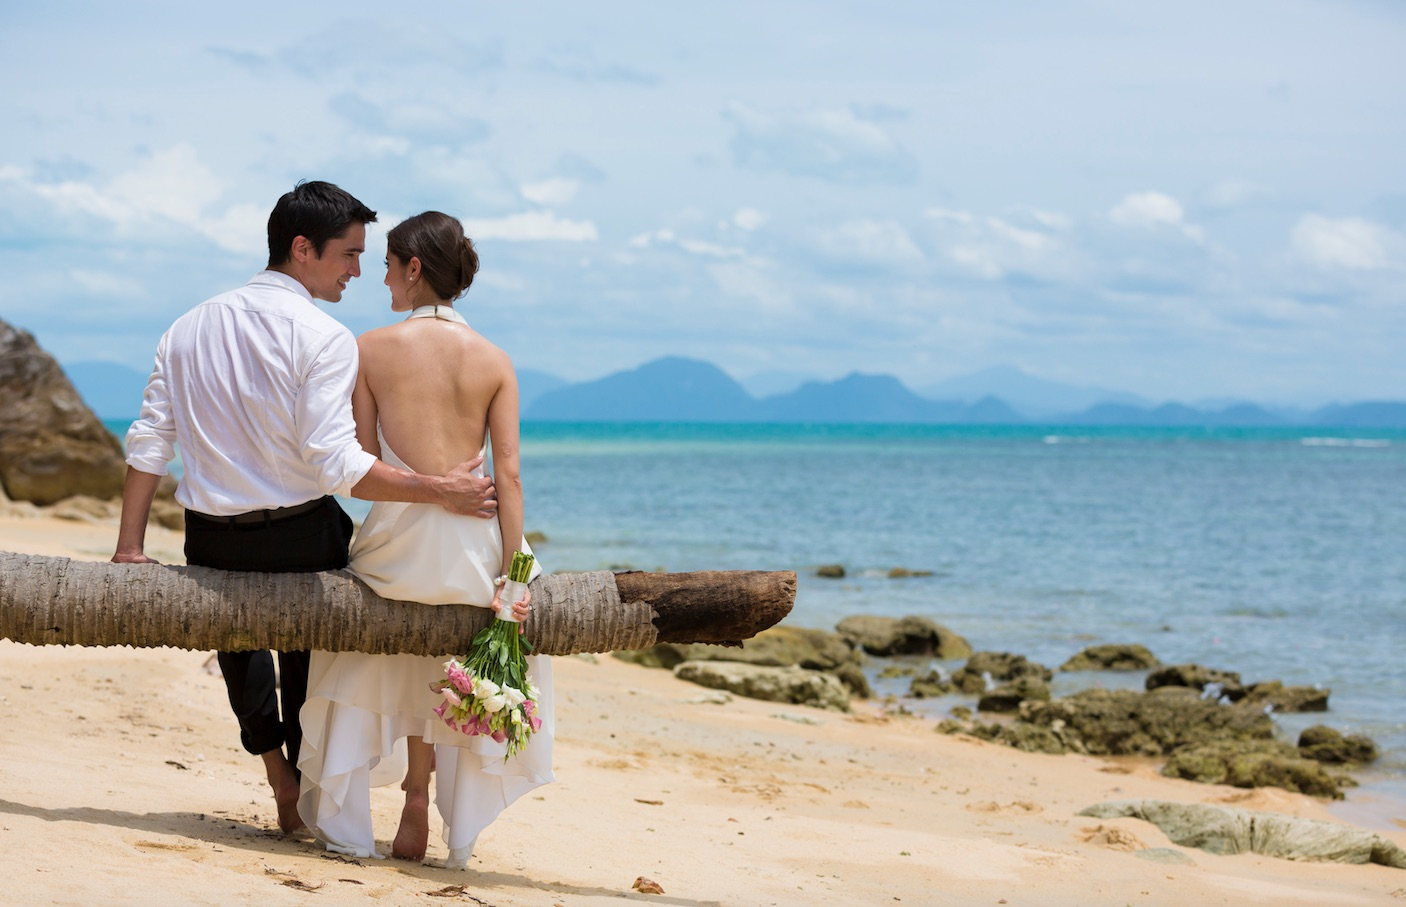 Bride and groom on palm tree in Thailand